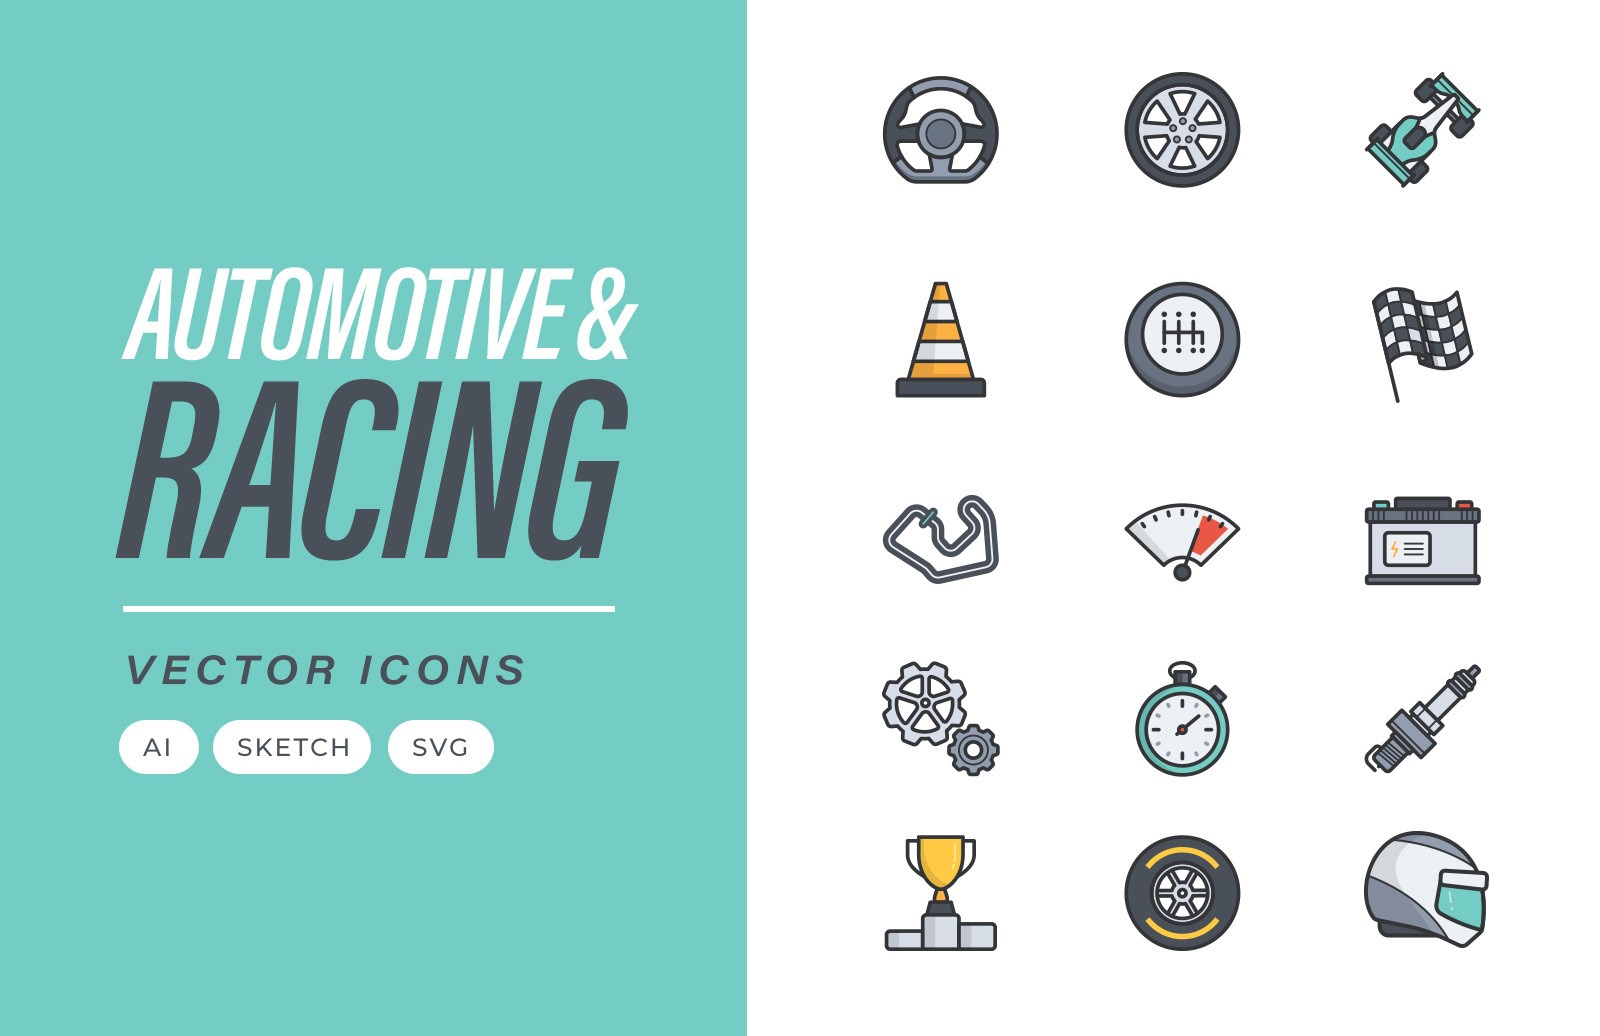 Automotive Racing Vector Icons Preview 1A